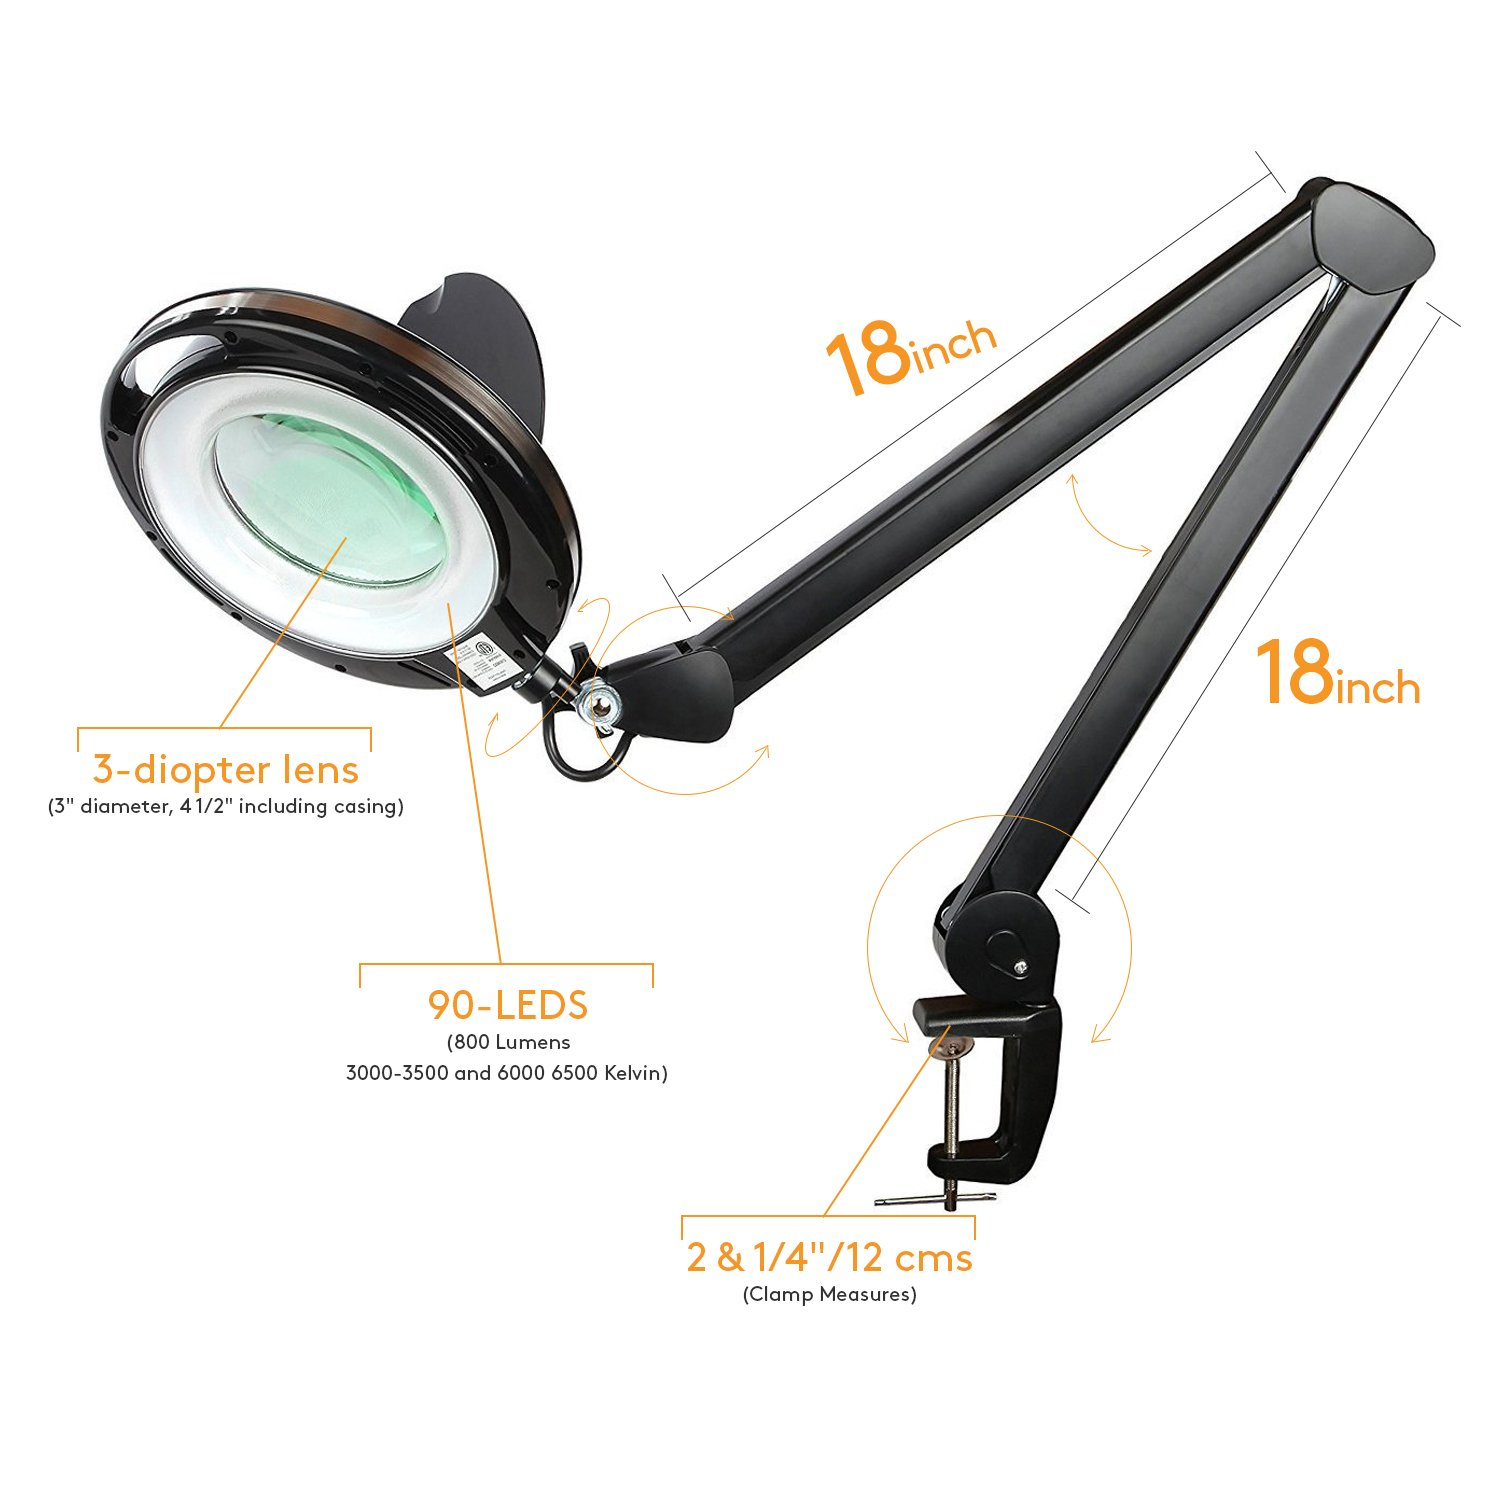 Brightech LightView PRO LED Magnifying Clamp Lamp - Daylight Bright Magnifier Lighted Lens – Dimmable with Adjustable Color Temperature Utility Light for Desk Table Task Craft or Workbench –black by Brightech (Image #10)